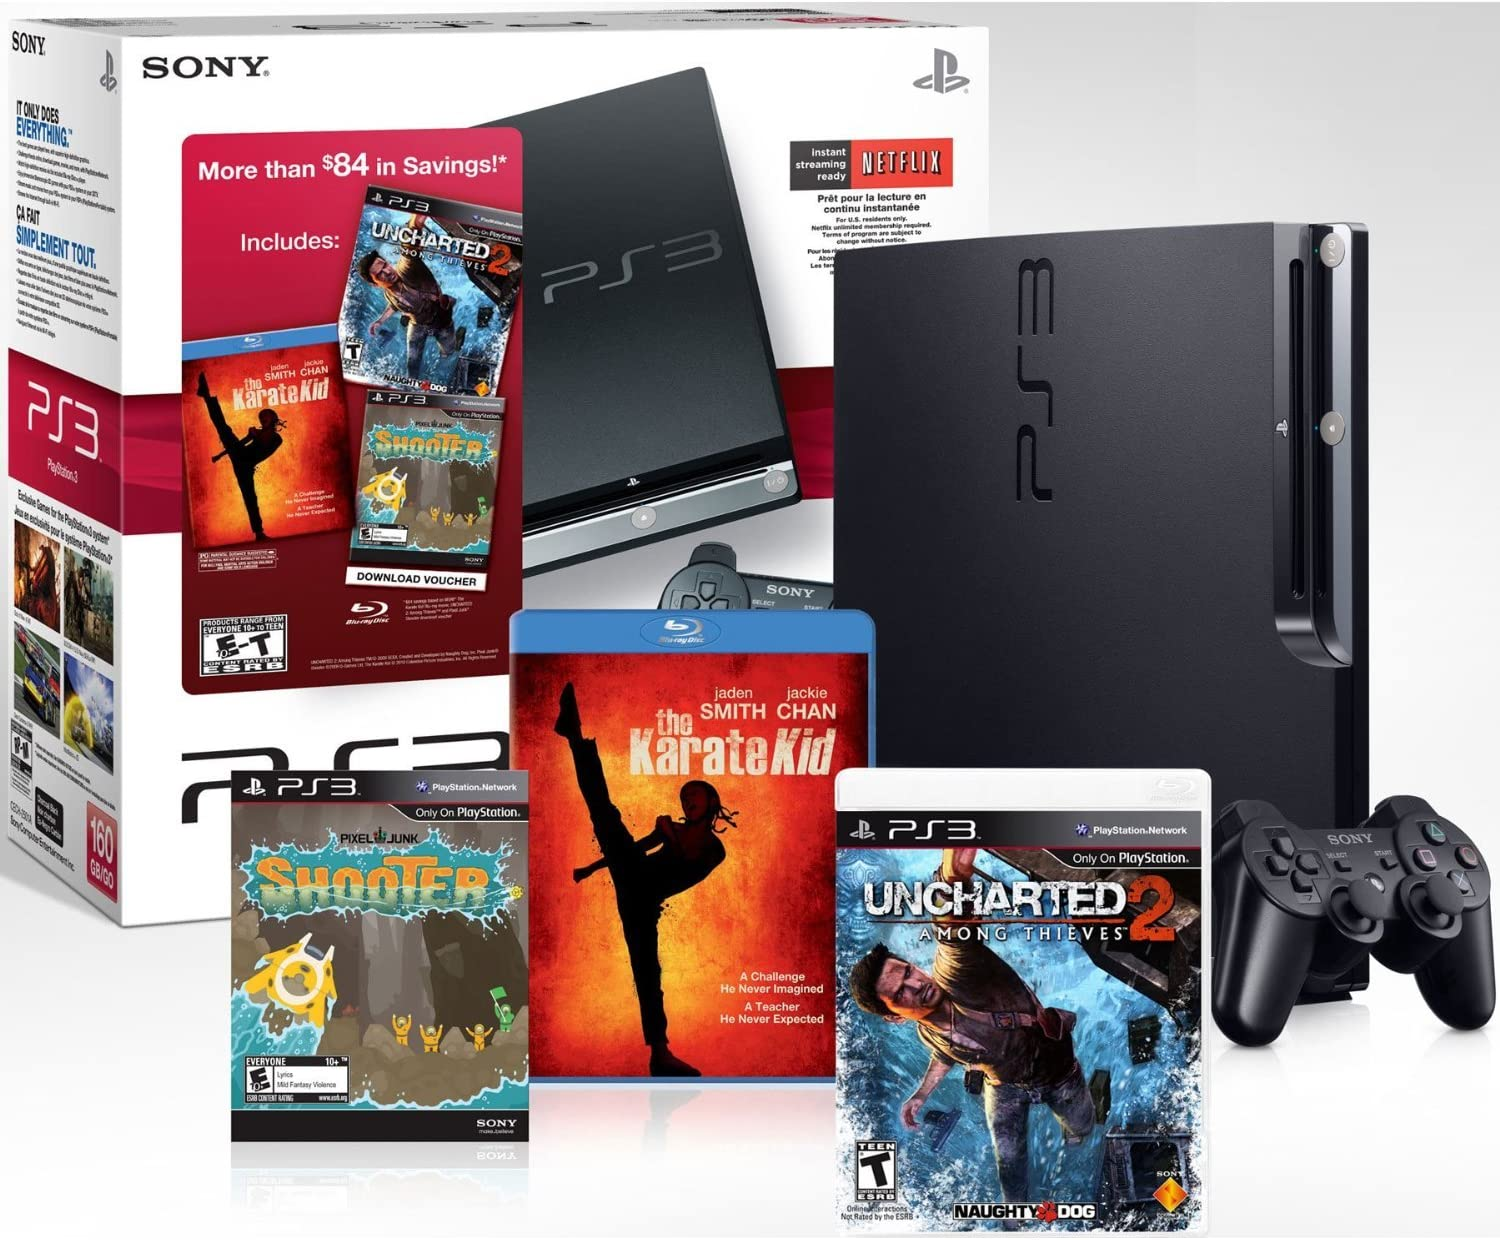 Amazon.com: PlayStation 3 160 GB Black Friday Bundle w ...